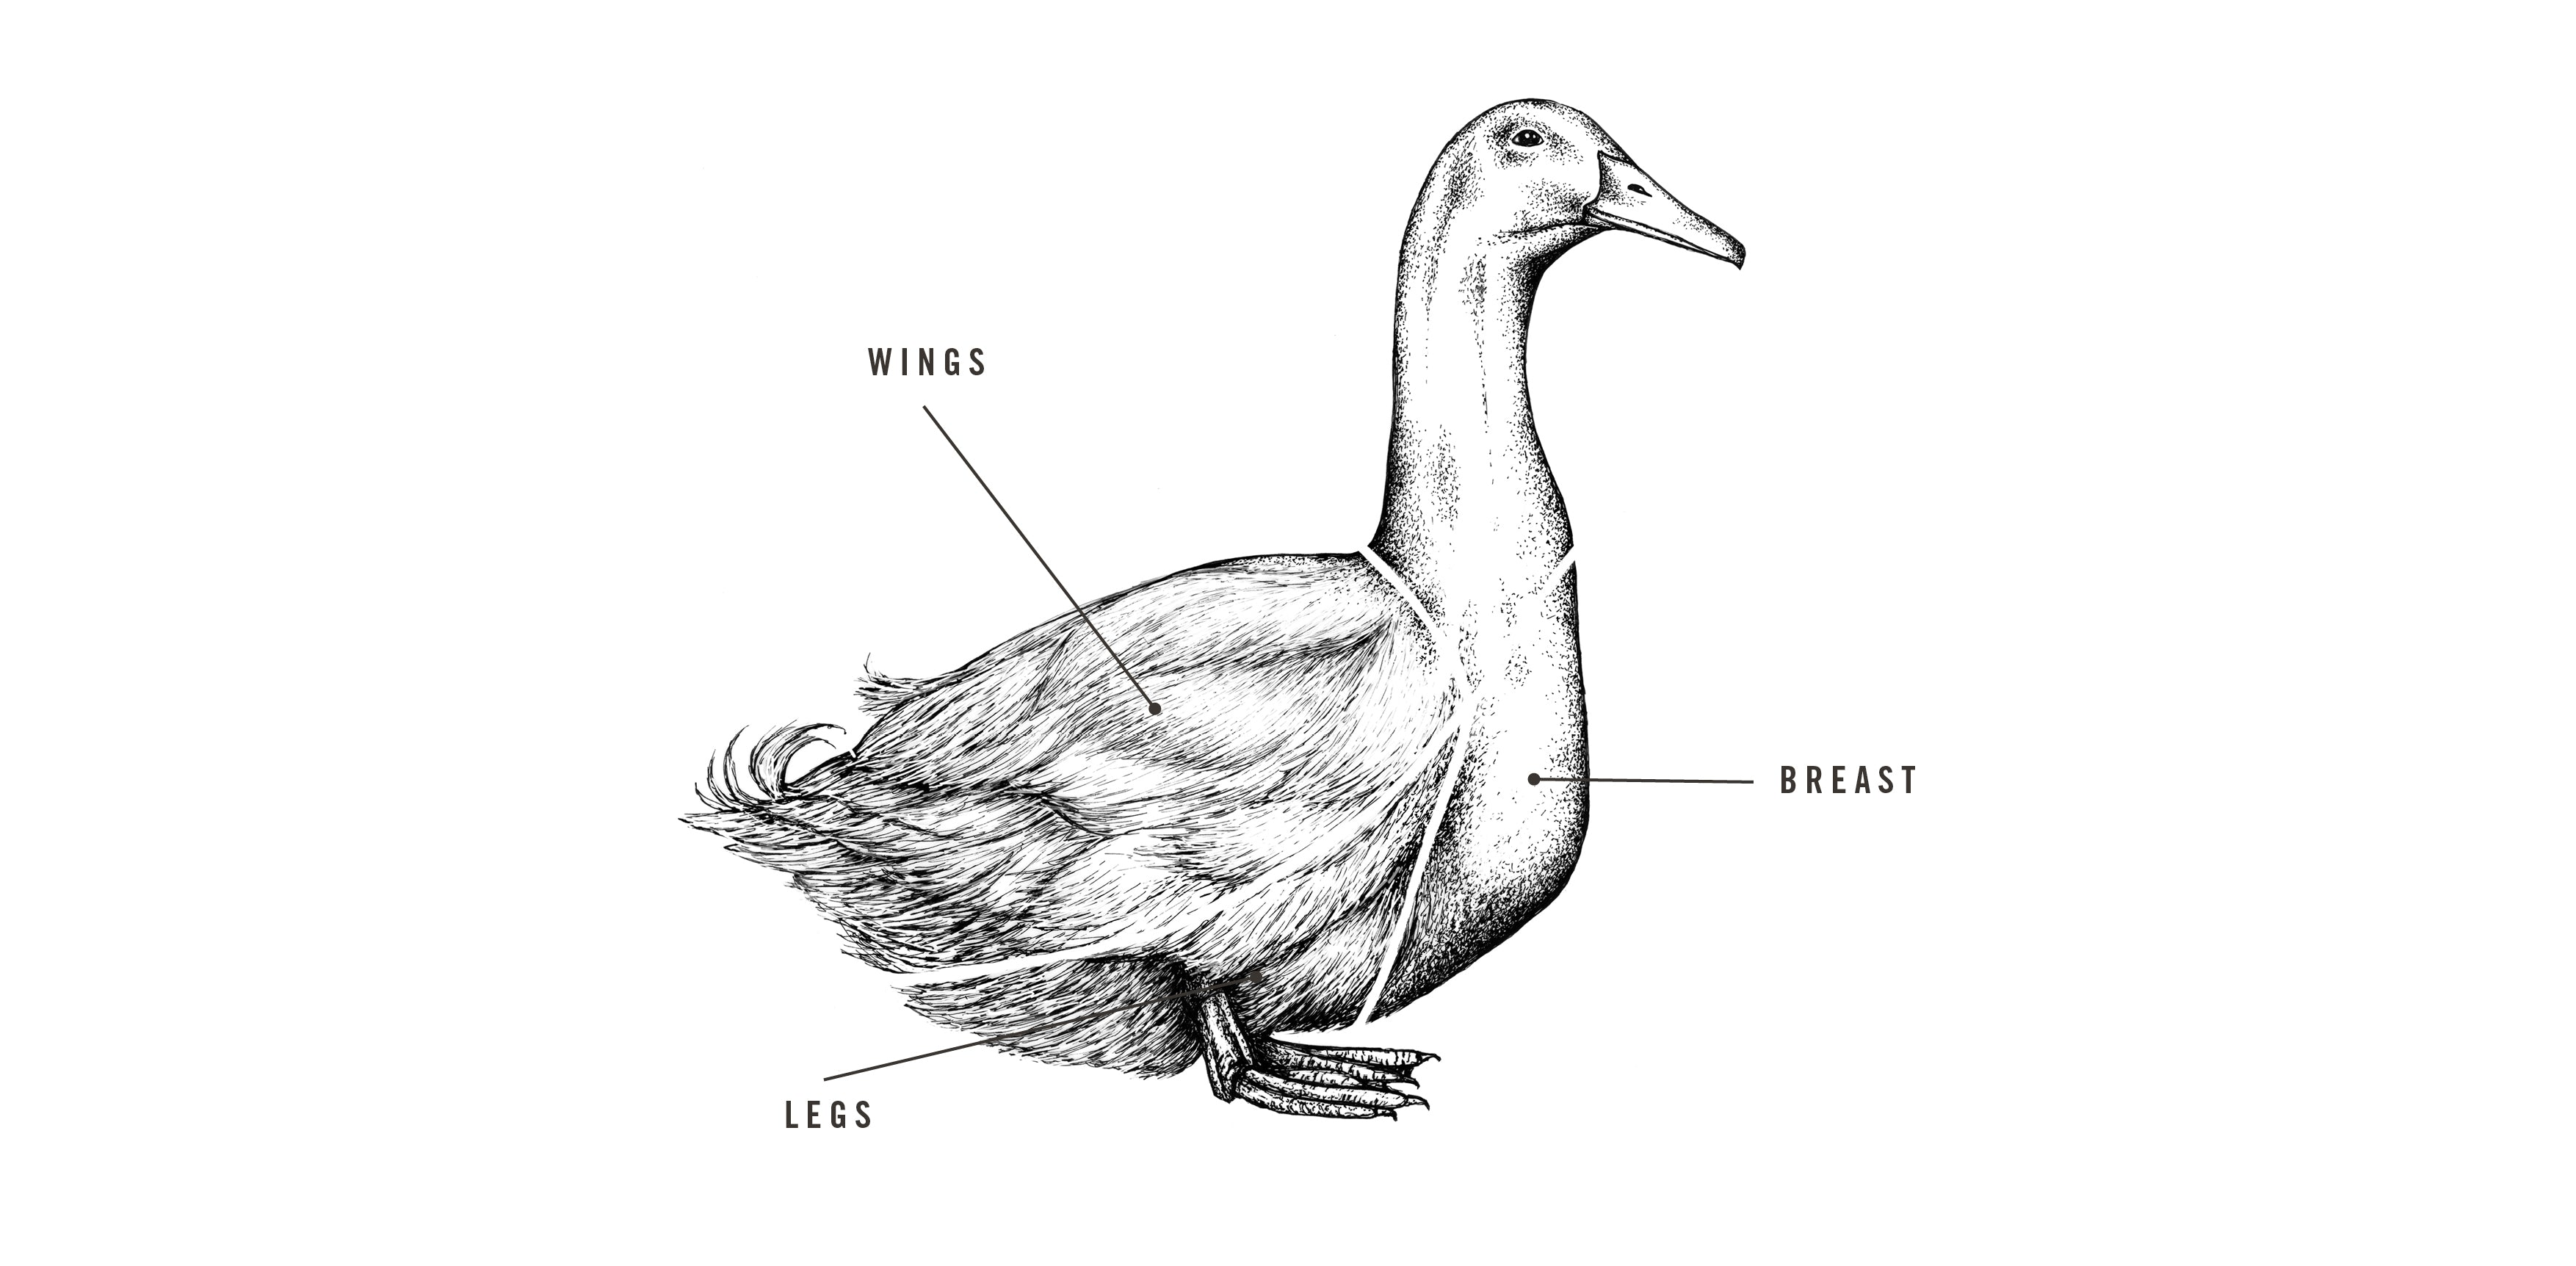 Free Range Whole Duck meat cuts diagram